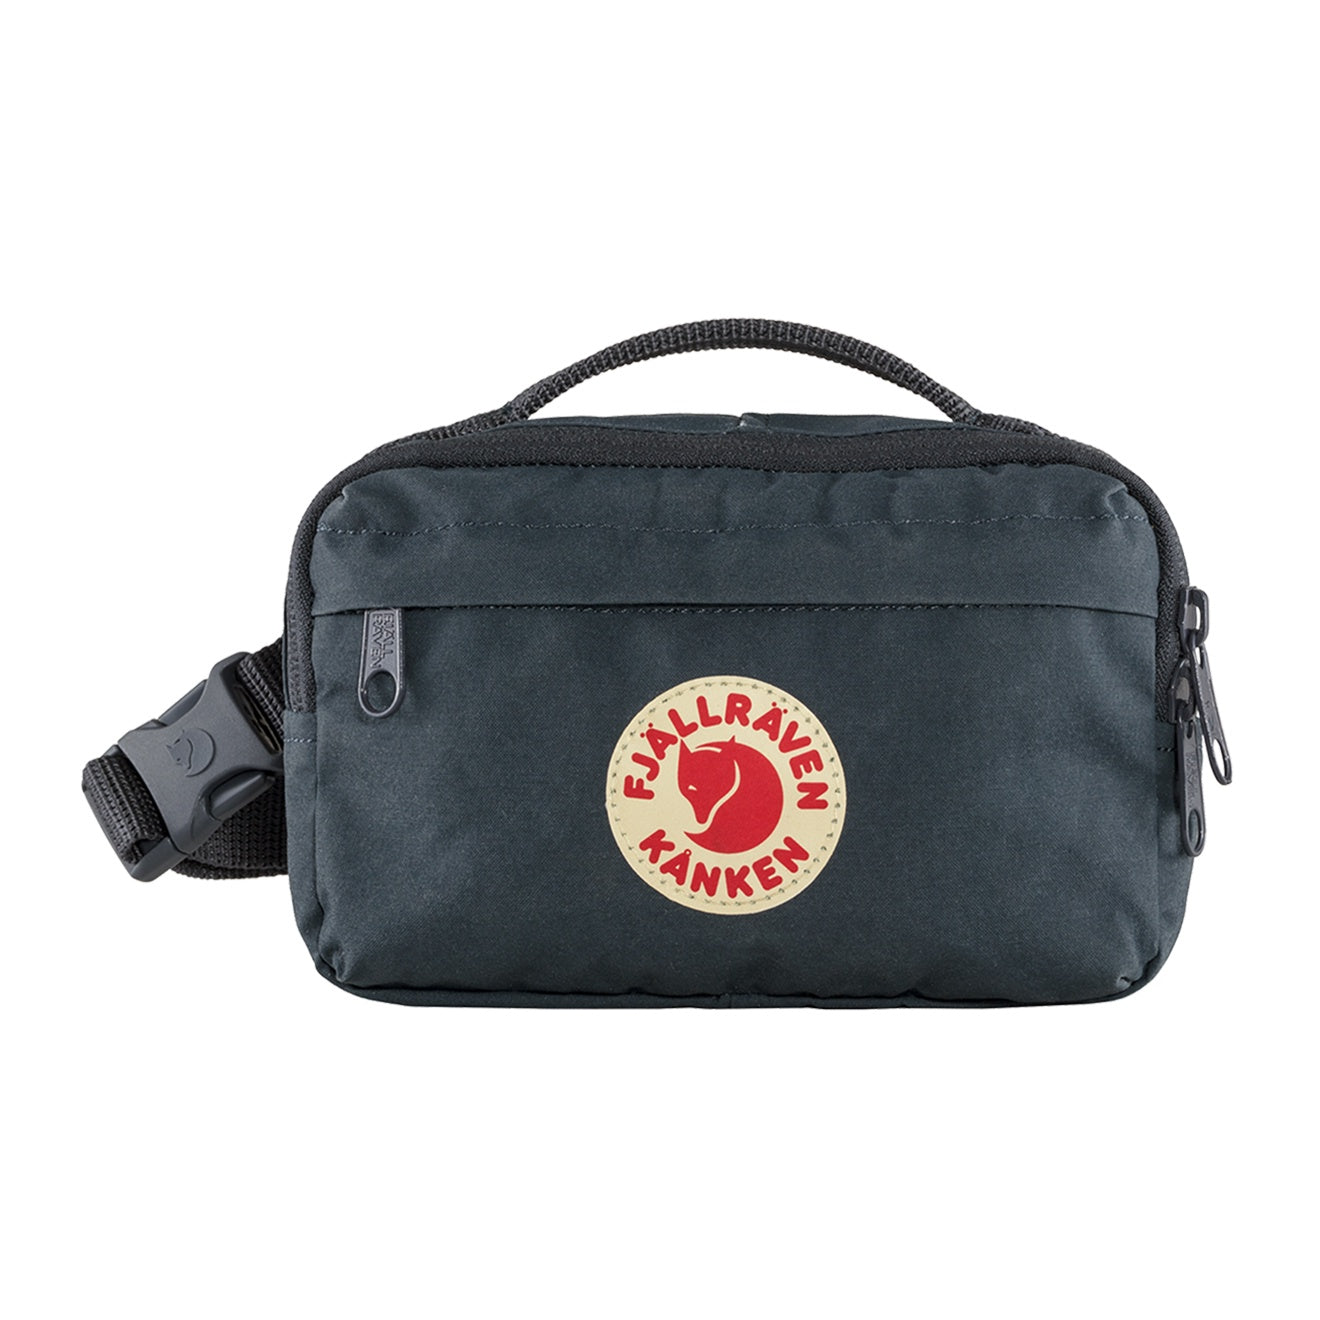 Kanken Hip Pack Navy